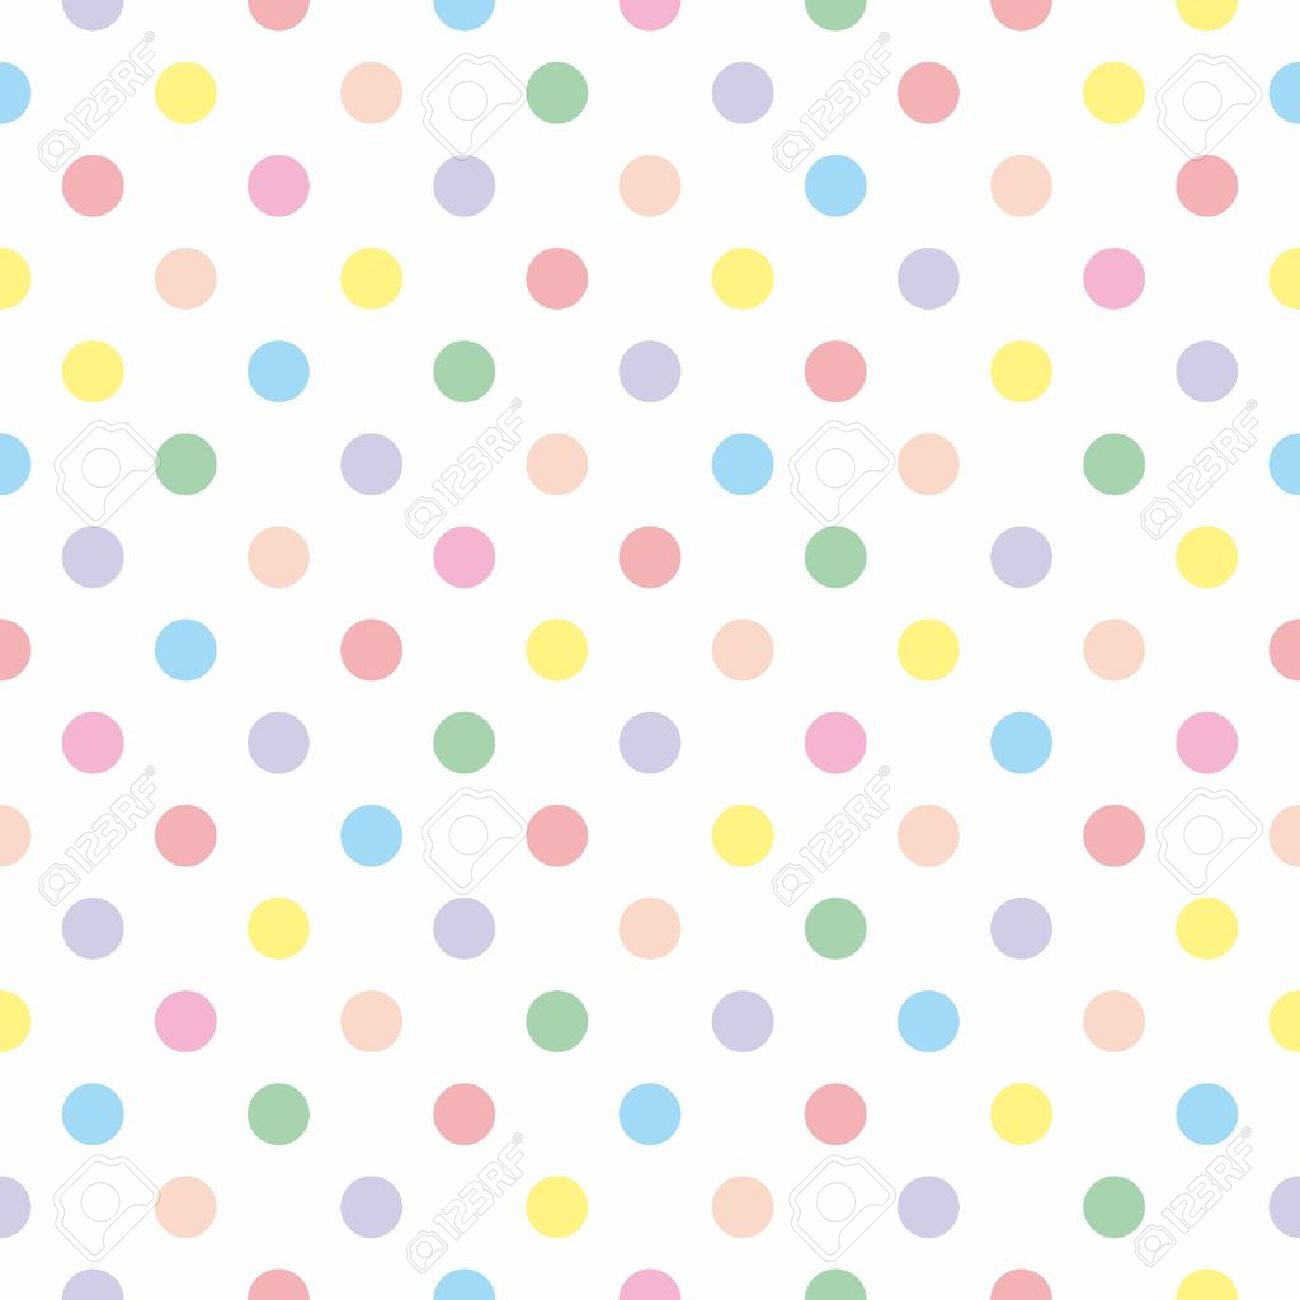 Seamless Pattern Texture Or Background With Pastel Colorful Royalty Free Cliparts Vectors And Stock Illustration Image 15934693